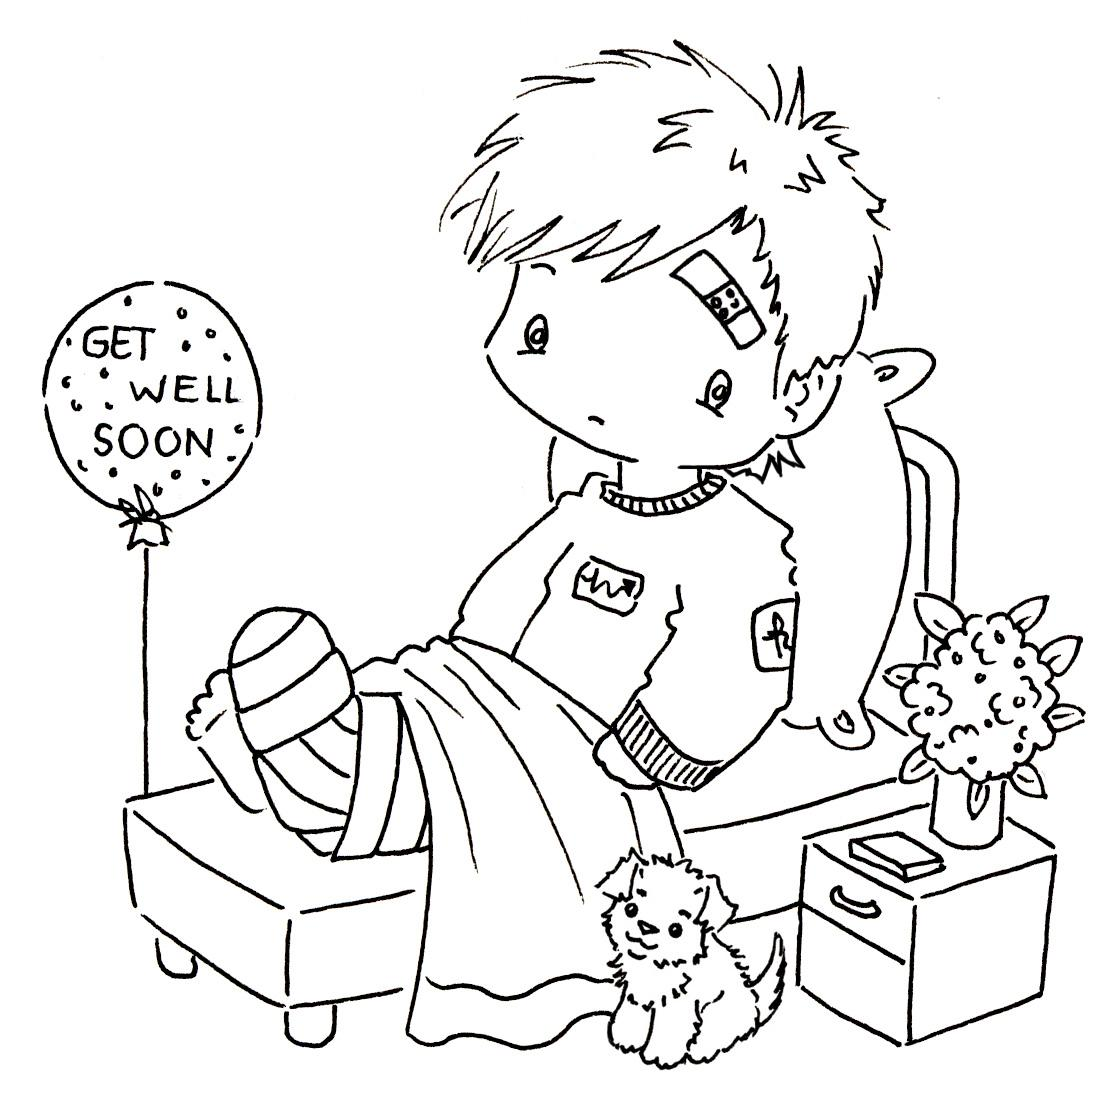 Get Well Cards Coloring Pages